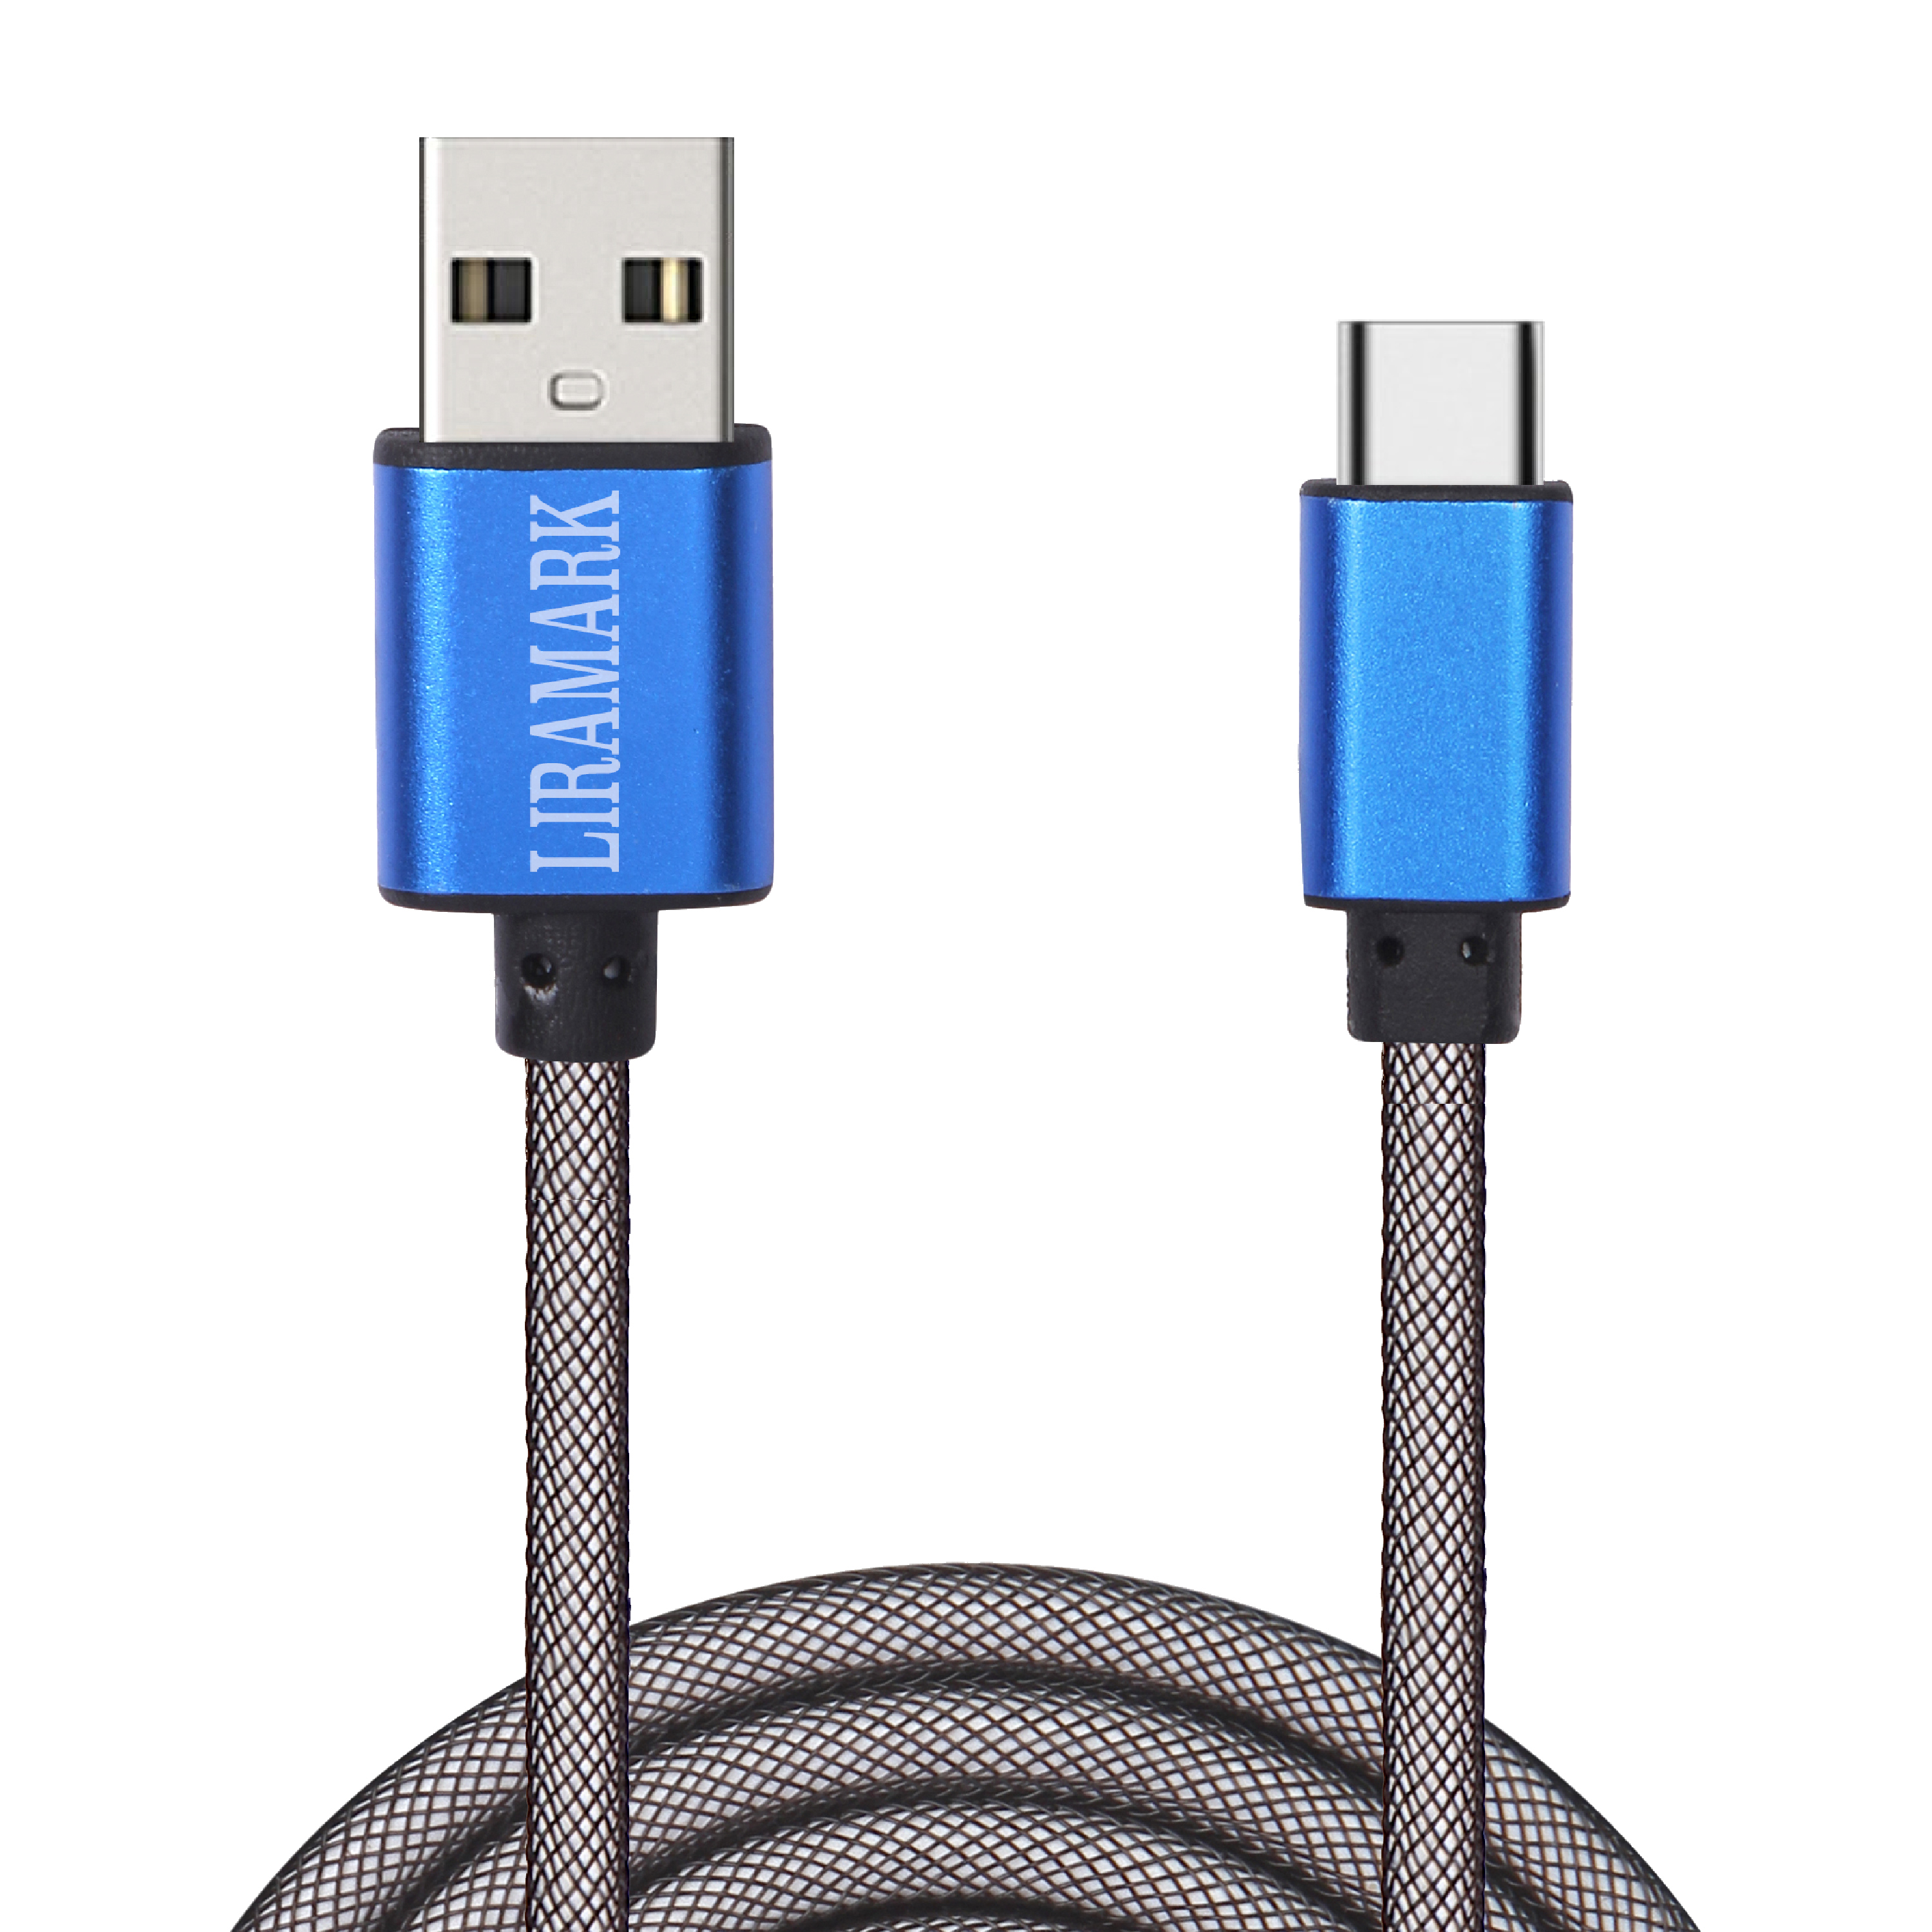 LIRAMARK Unbreakable Tough USB Type C Data Cable for Fast Charging with VOOC/Dash Charging